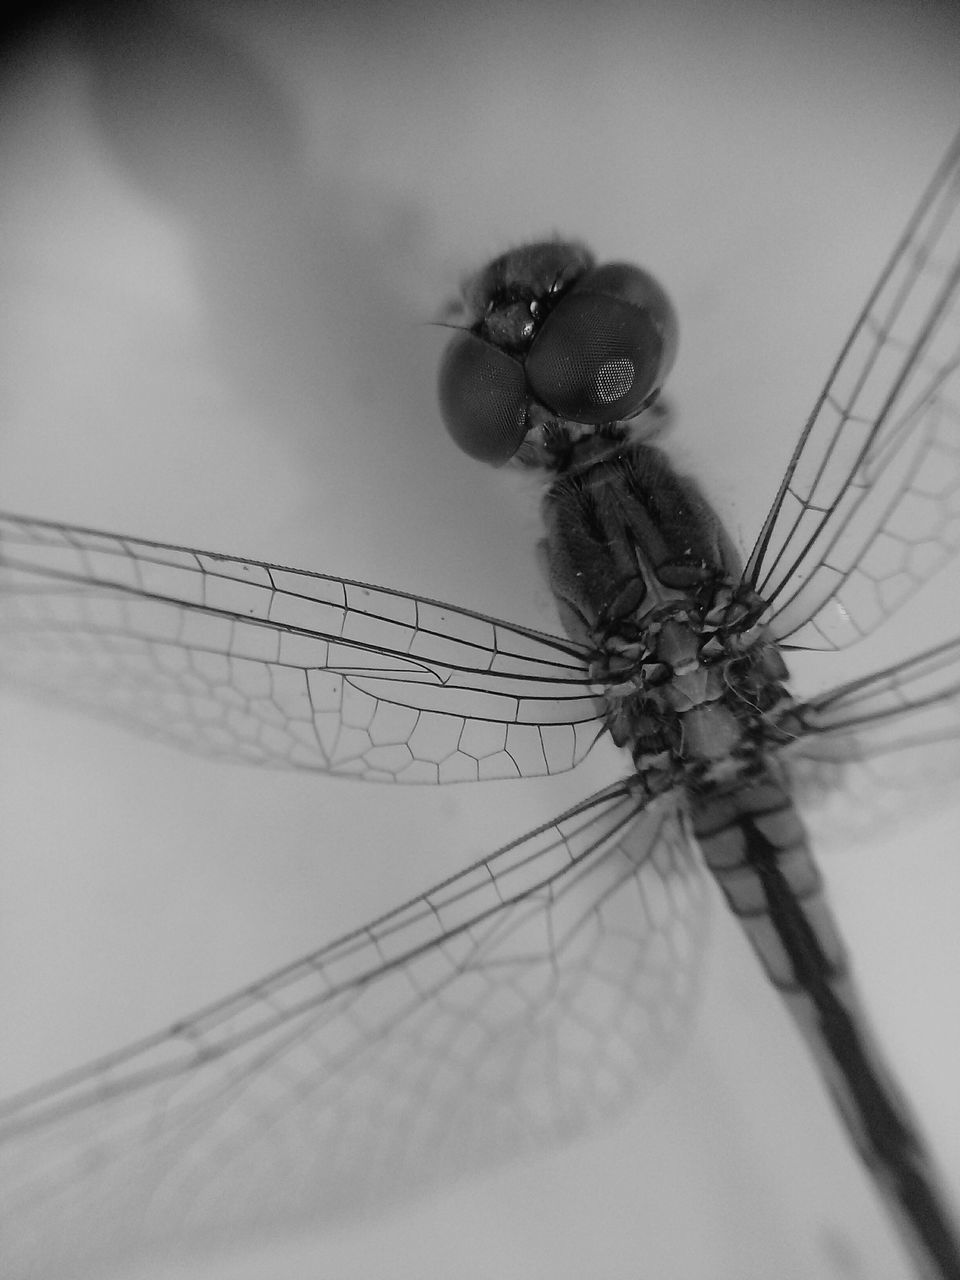 insect, animal themes, close-up, animals in the wild, outdoors, no people, one animal, nature, day, sky